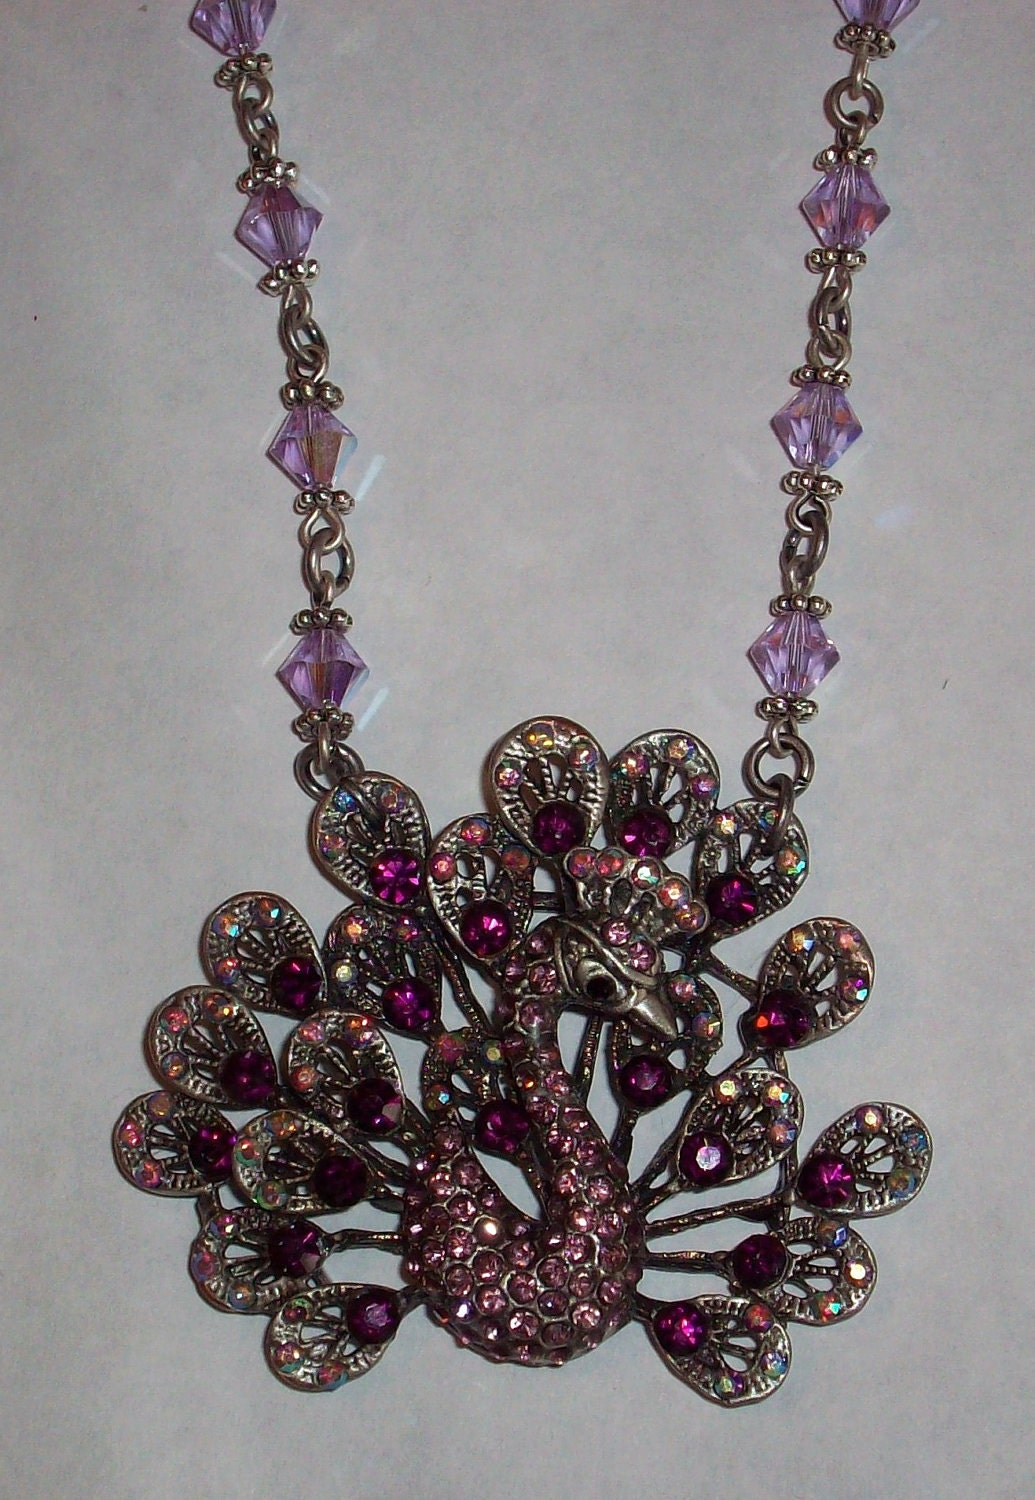 SALE 30% Off-Unique One of a Kind Peacock Crystal Swarovski Crystal Pendant Necklace Gifts under 100